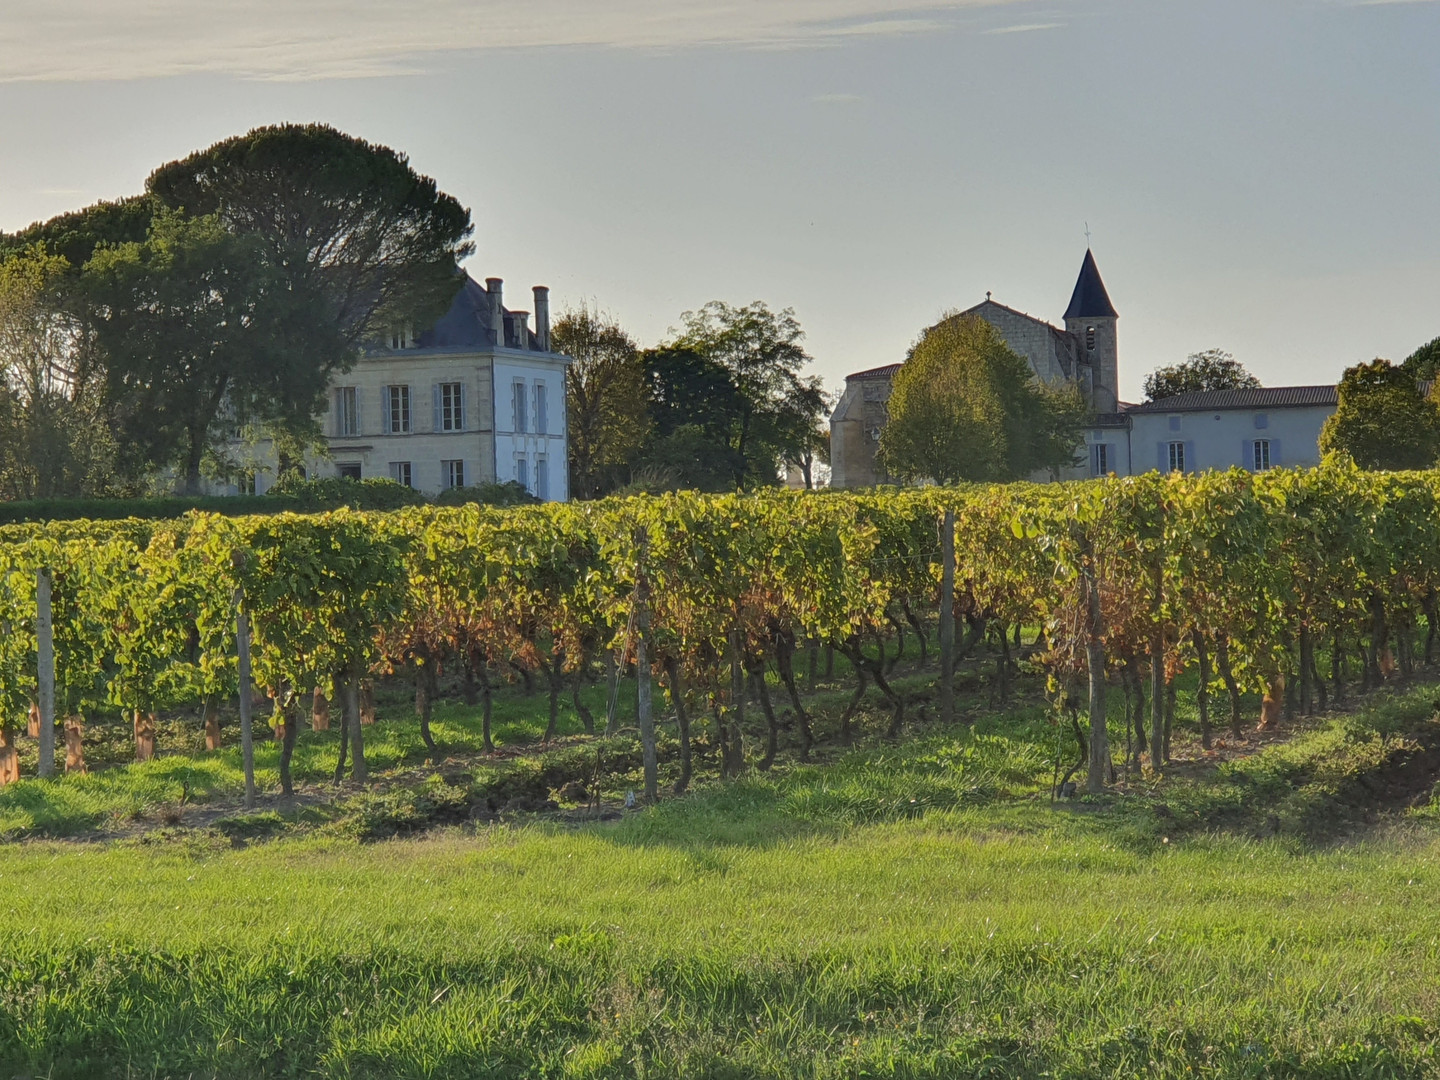 Le Logis from across the vines.